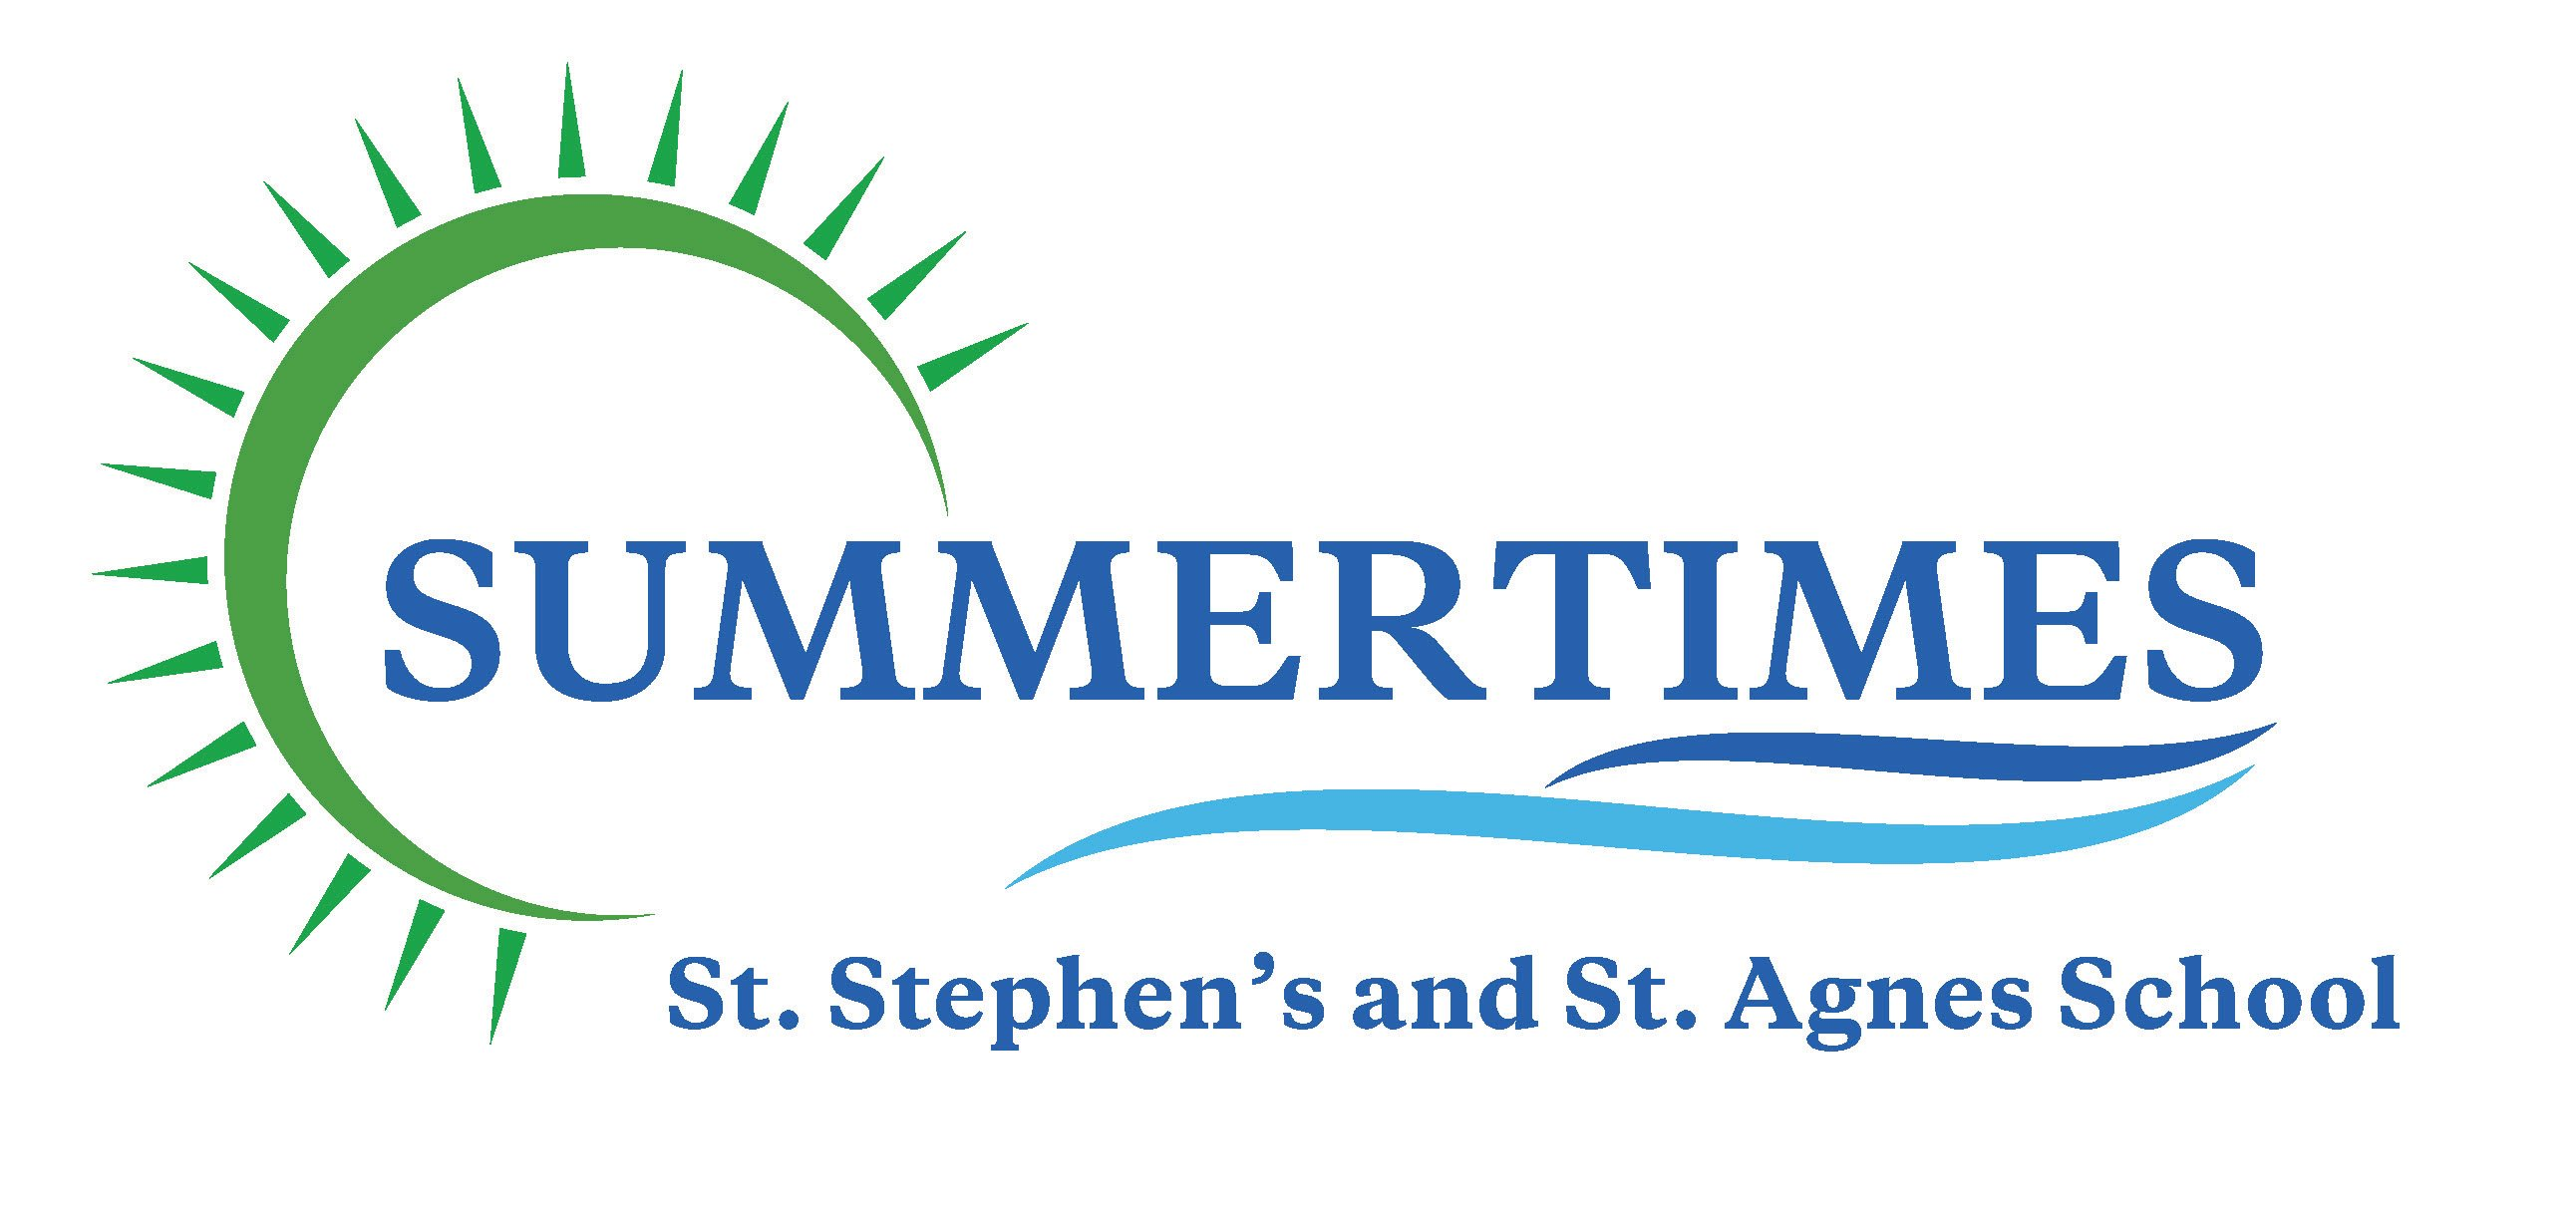 Summertimes at St. Stephen's & St. Agnes School